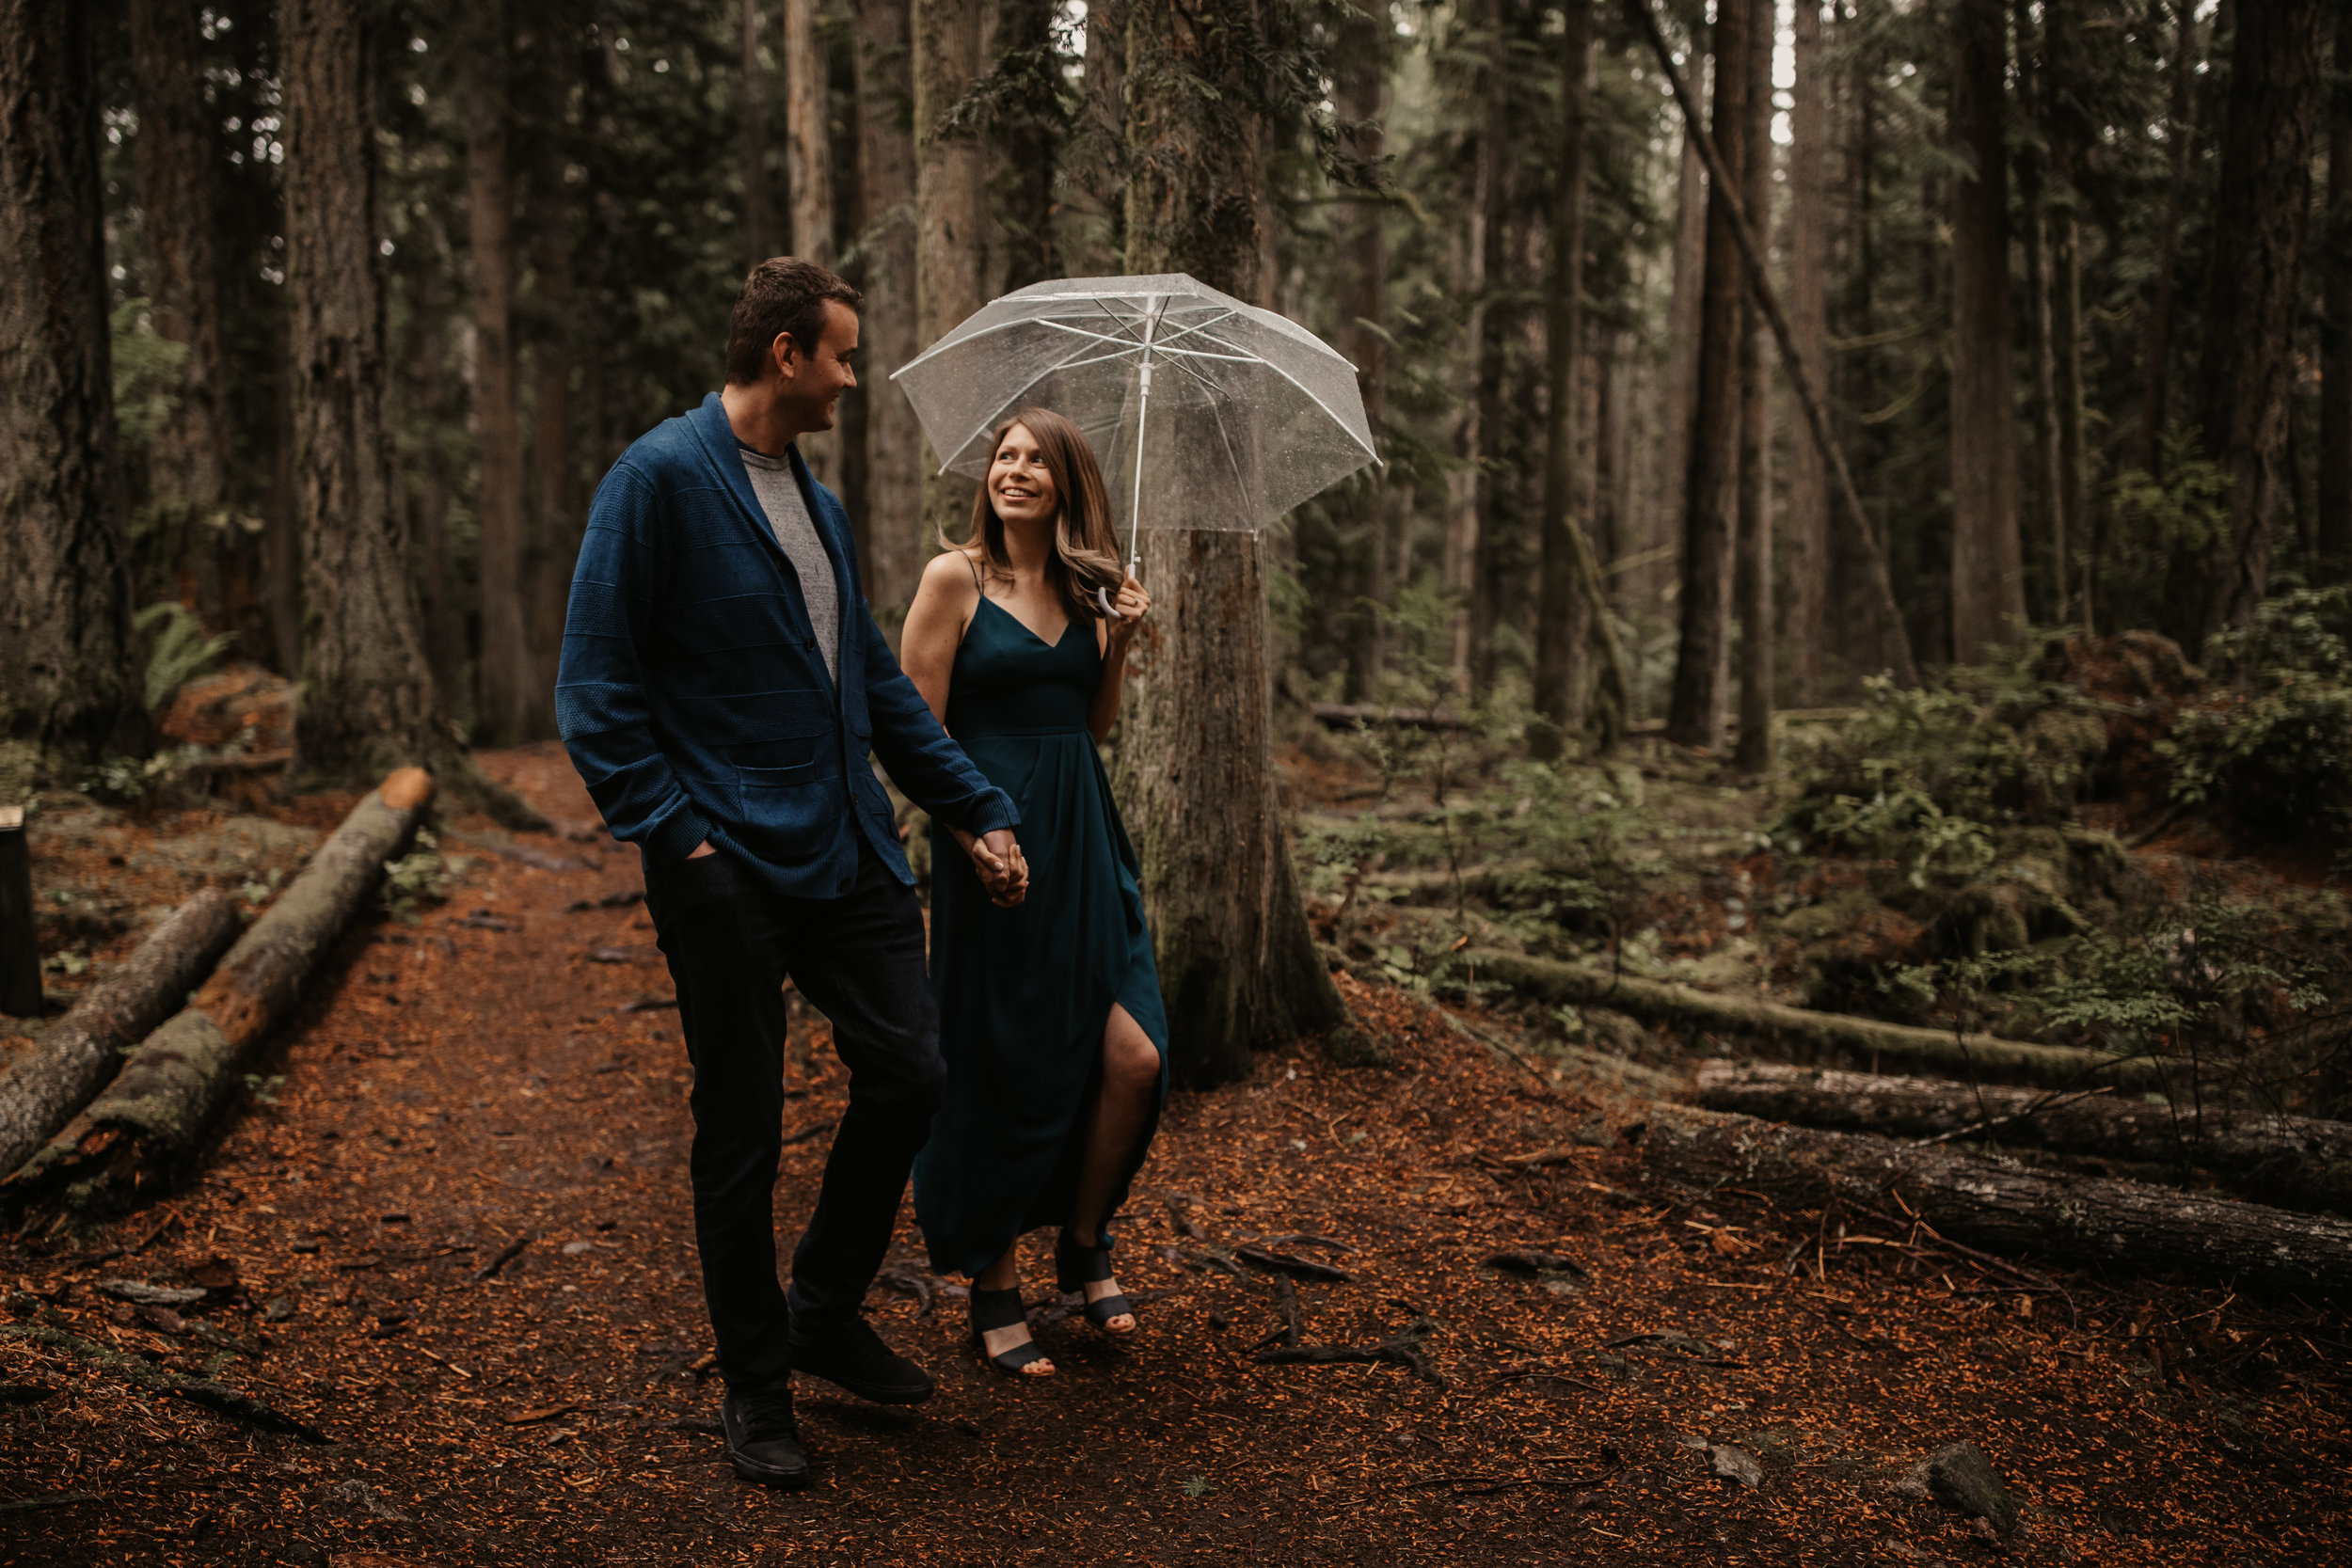 SUNSHINE COAST FOREST & BEACH ENGAGEMENT PHOTOS — Ashley & Antoine — JENNIFER PICARD PHOTOGRAPHY206.JPG